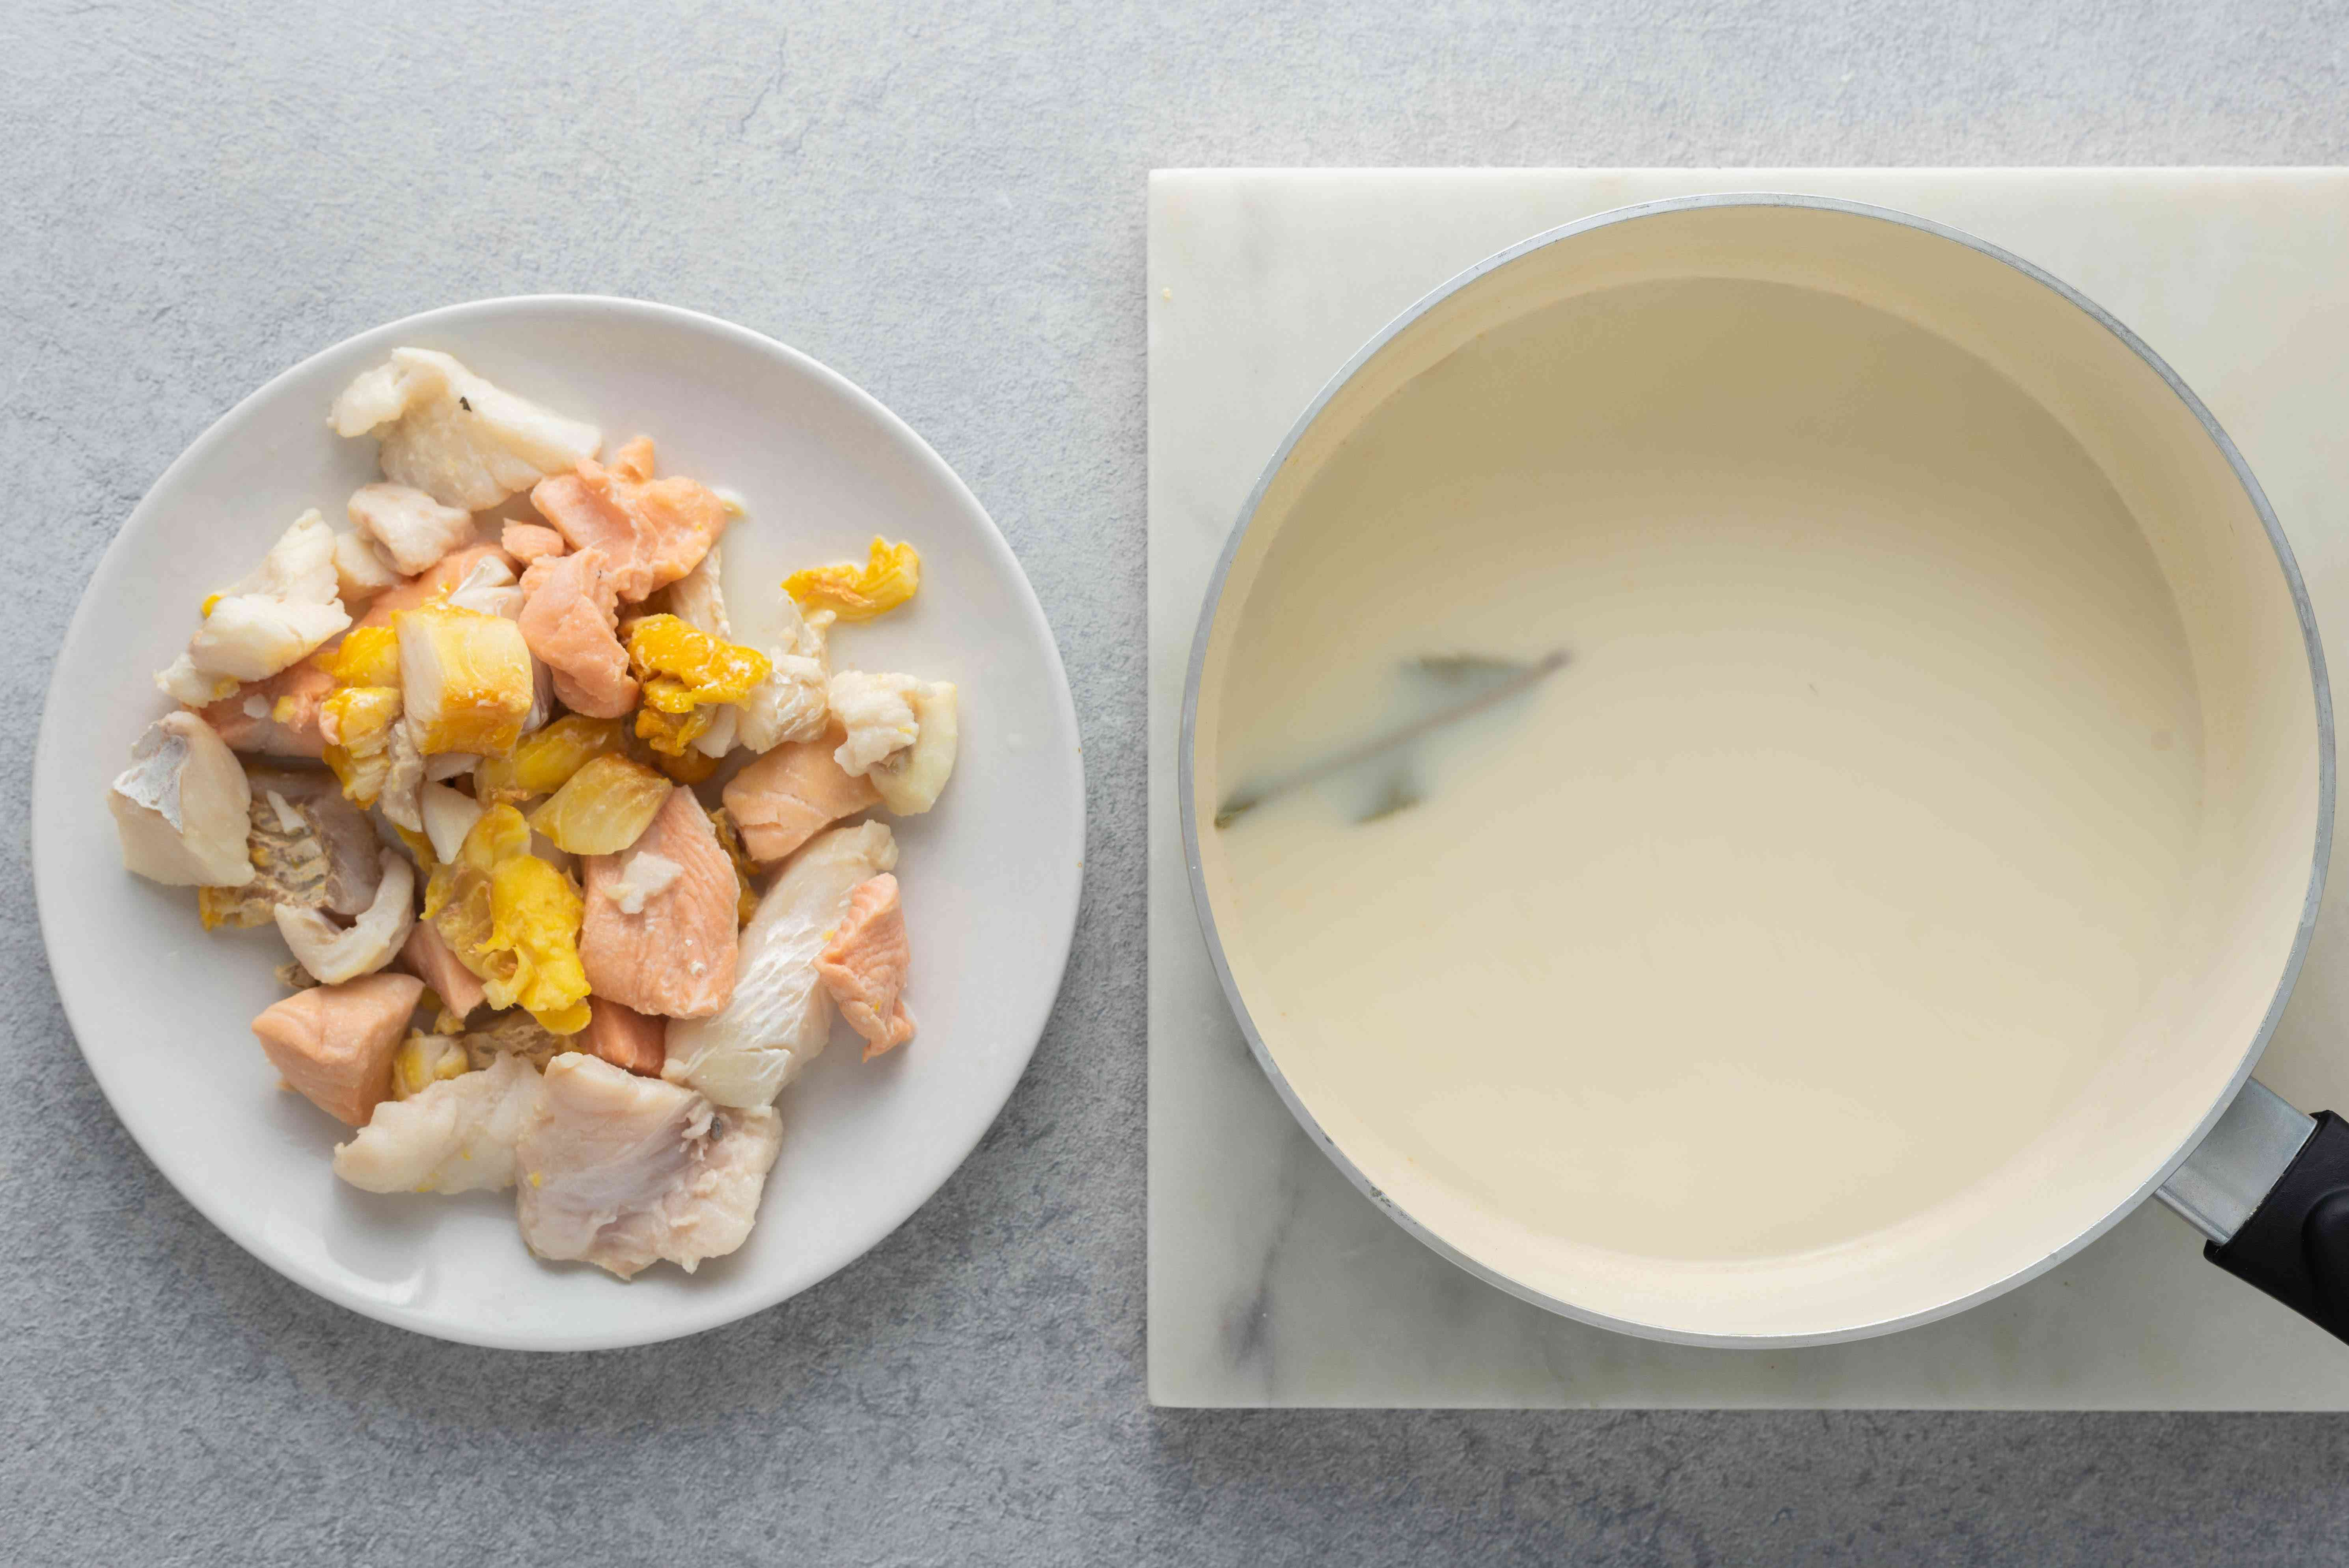 Poached fish on a plate; poaching liquid in a saucepan